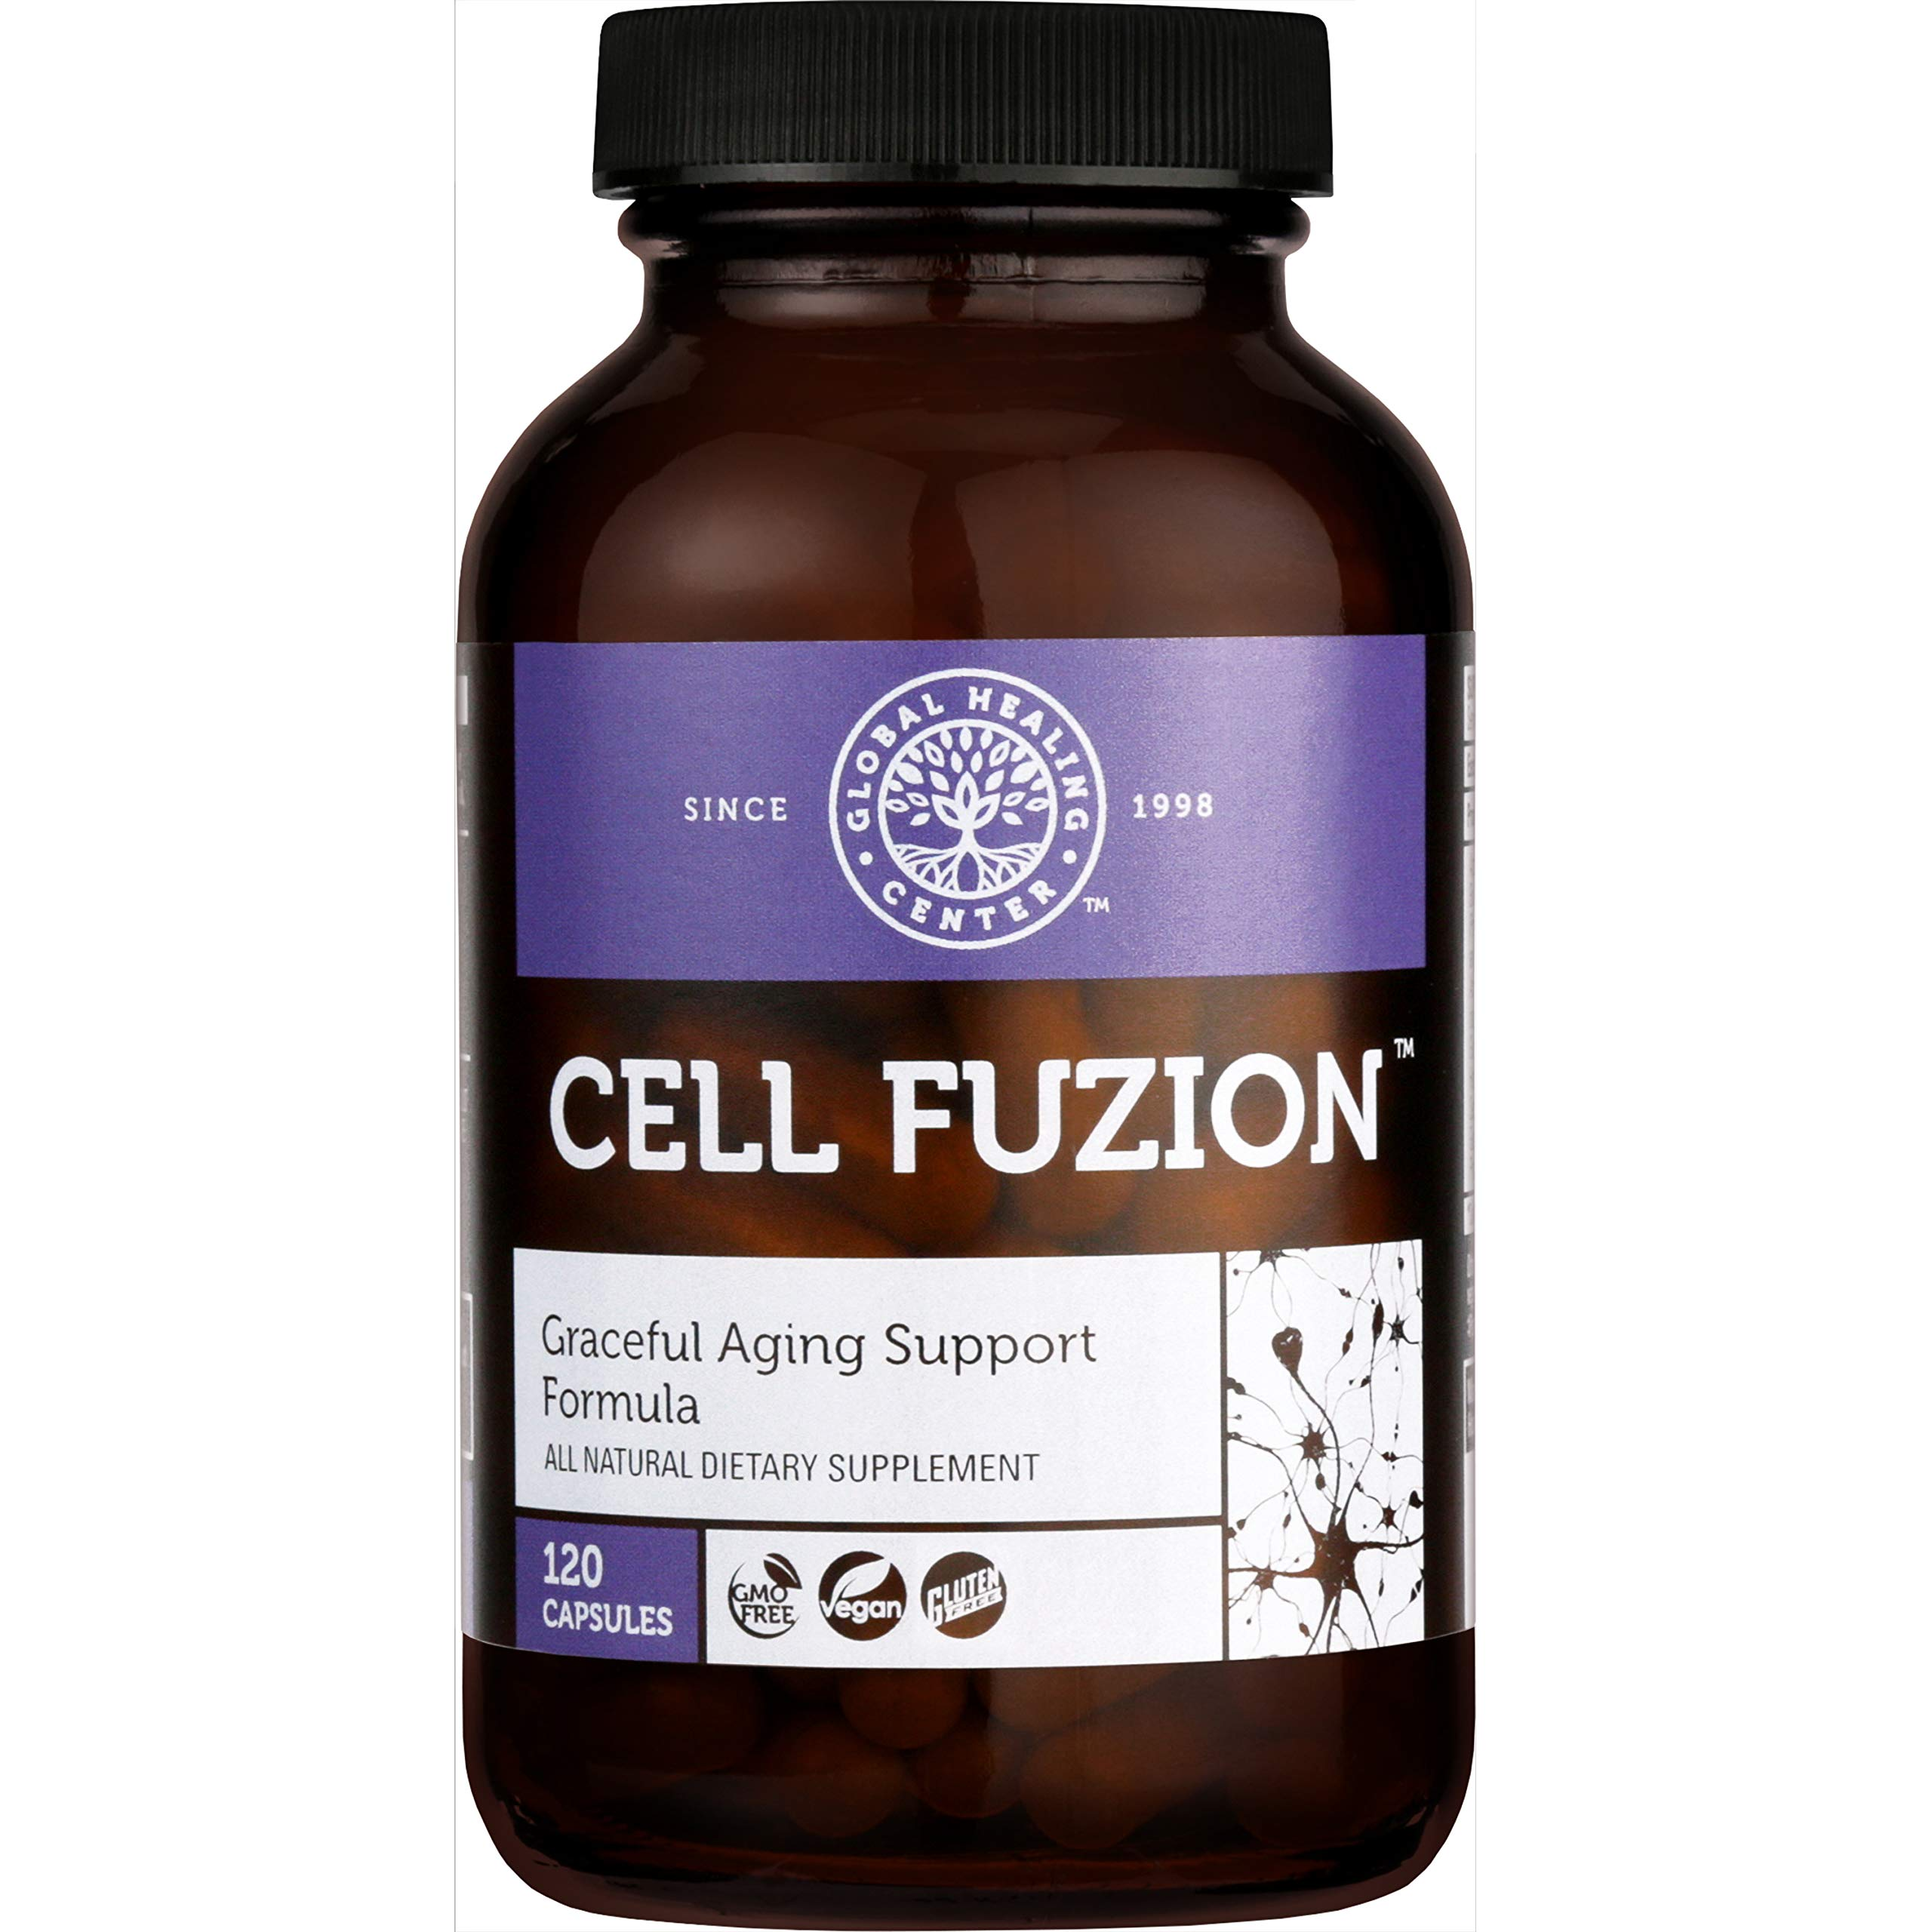 Global Healing Center Cell Fuzion Advanced Antioxidant Formula, 120 Capsules by Global Healing Center